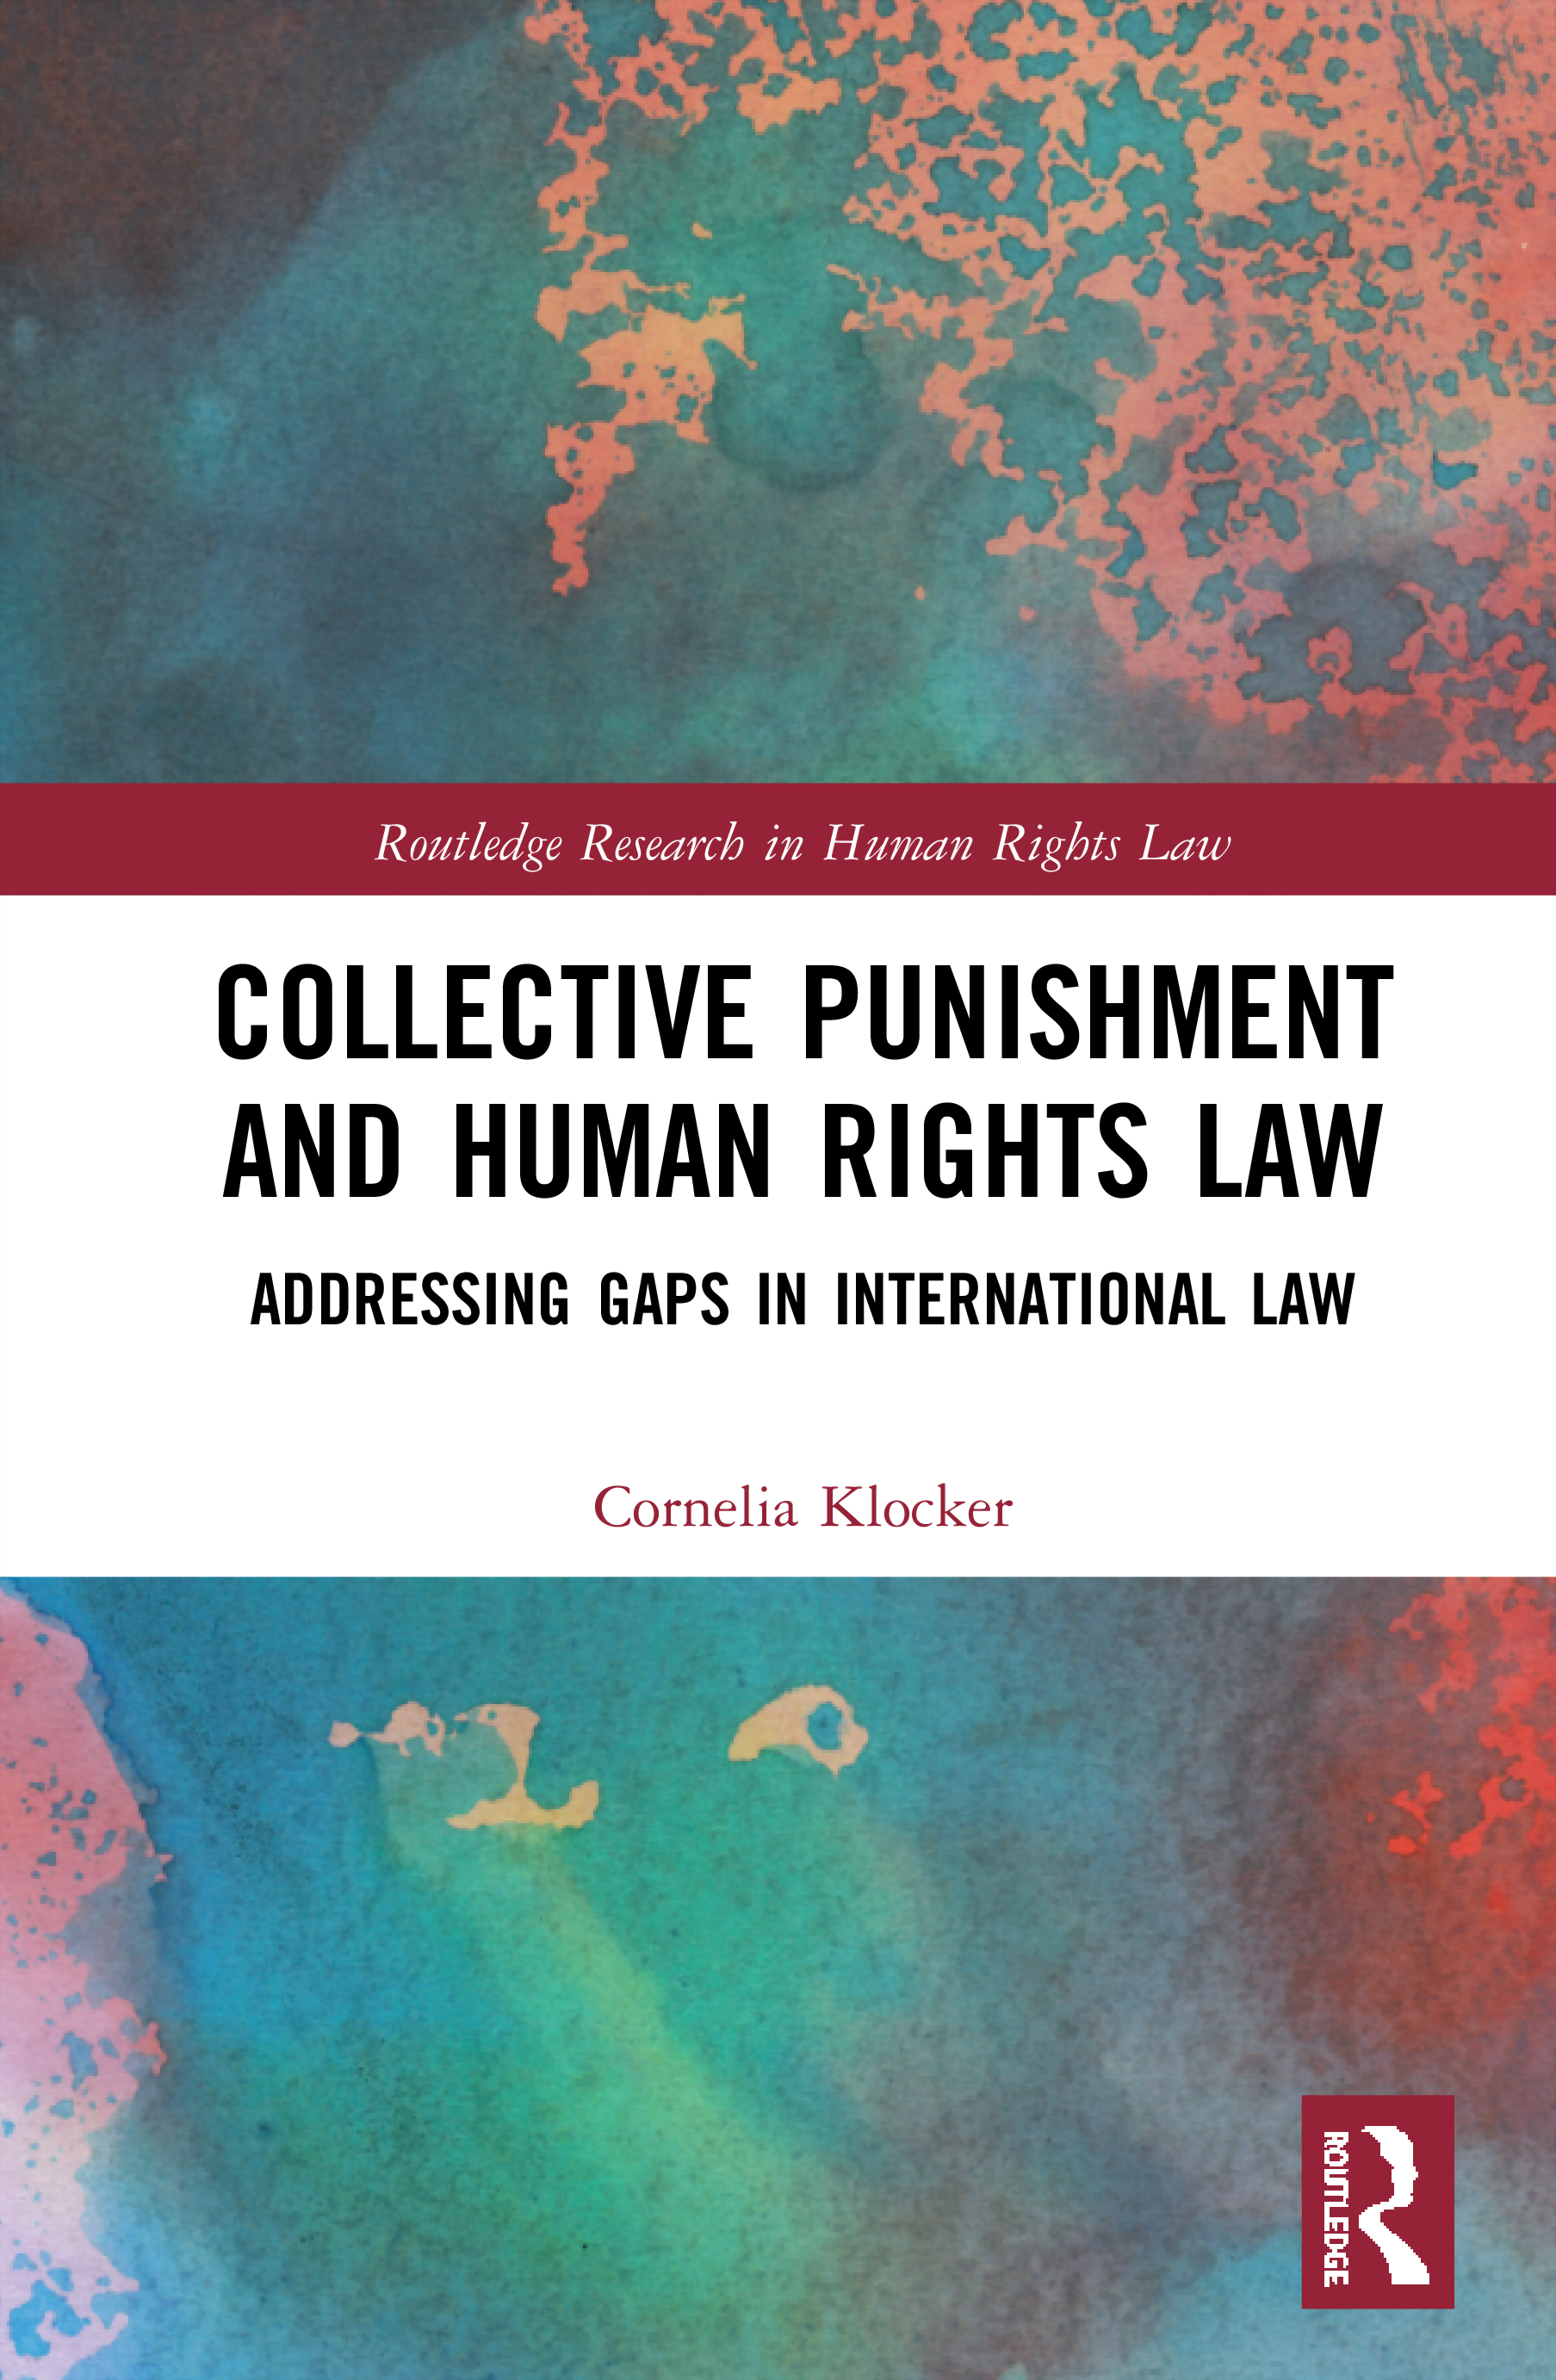 Collective Punishment and Human Rights Law: Addressing Gaps in International Law book cover